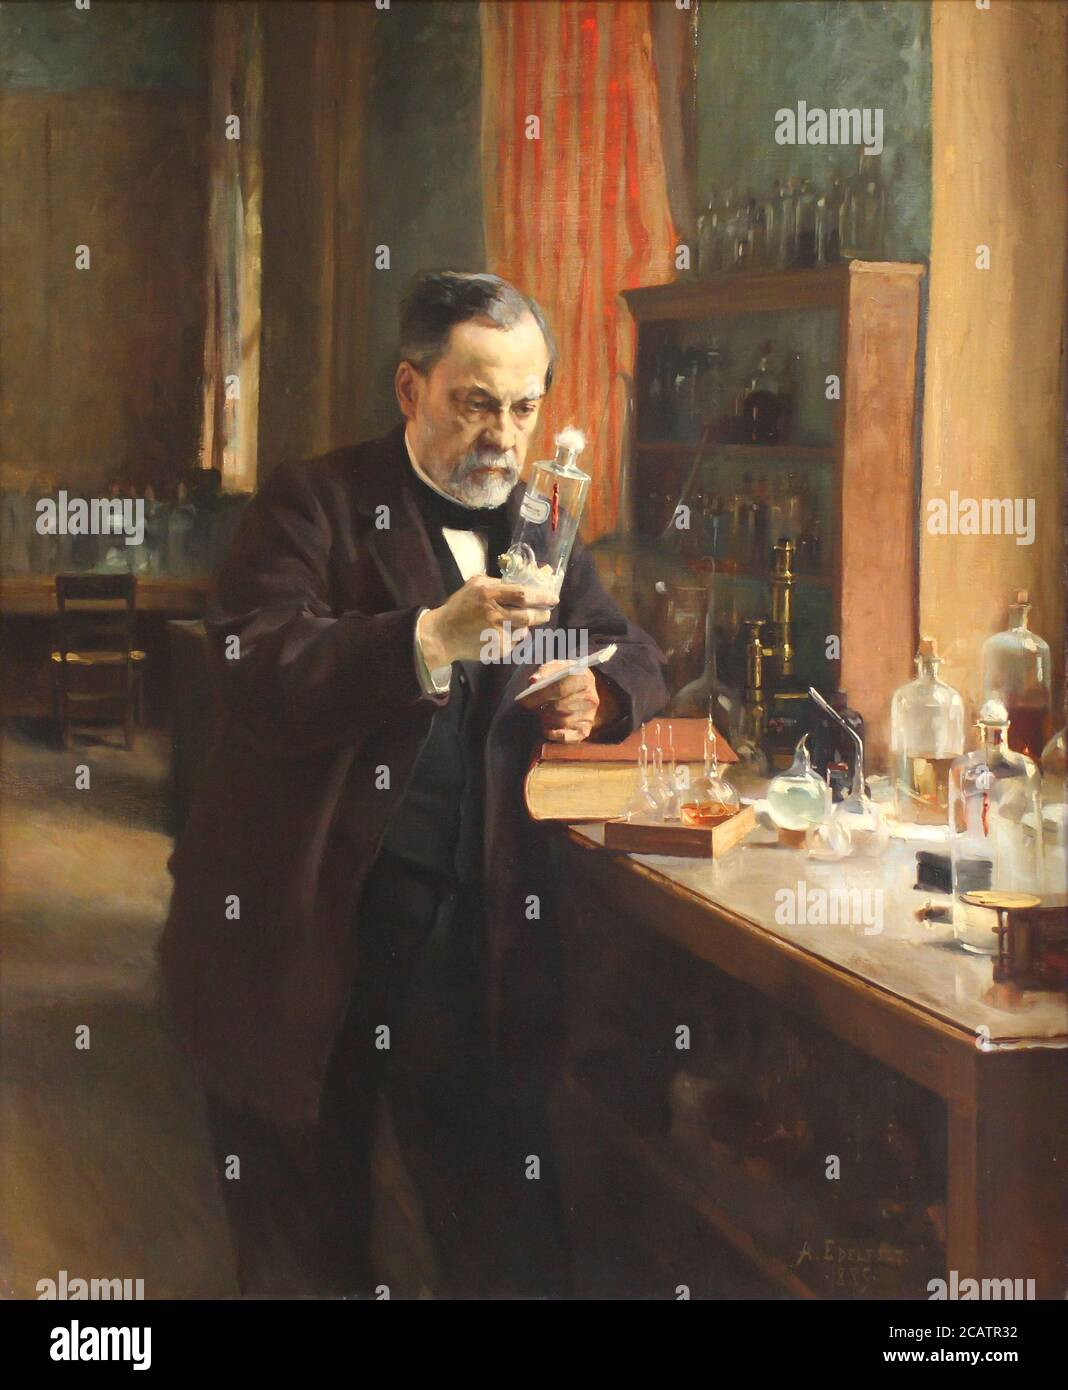 Louis Pasteur in his laboratory, painting by Albert Edelfelt in 1885 [ Louis Pasteur 1822 – 1895 French chemist and microbiologist renowned for his discoveries of the principles of vaccination, microbial fermentation and pasteurization] Stock Photo